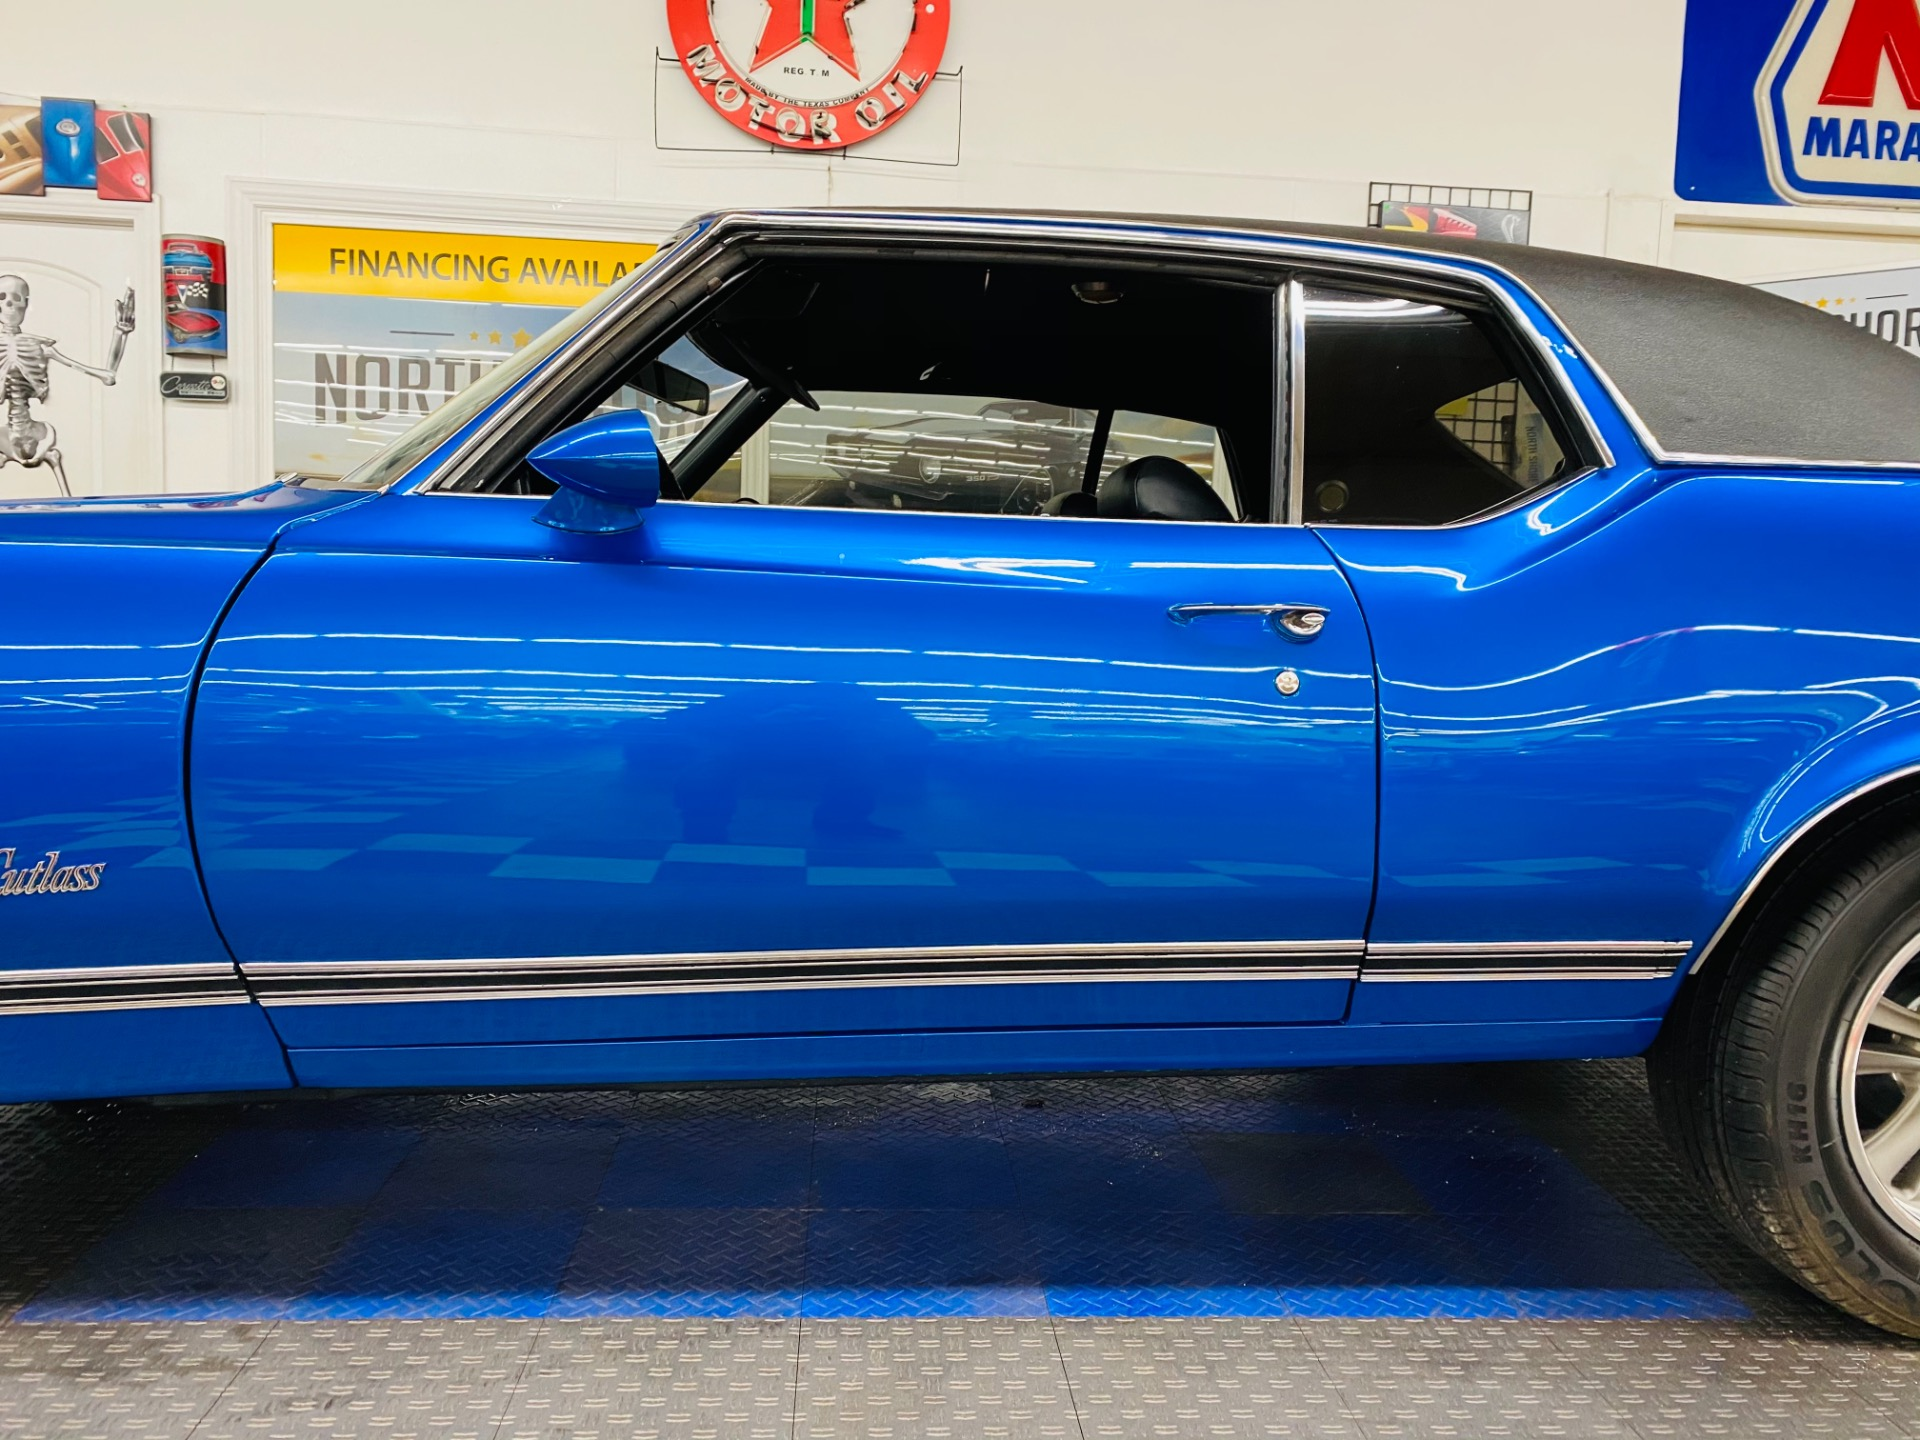 Used 1970 Oldsmobile Cutlass - HIGH QUALITY PAINT - VERY CLEAN BODY - SEE VIDEO | Mundelein, IL